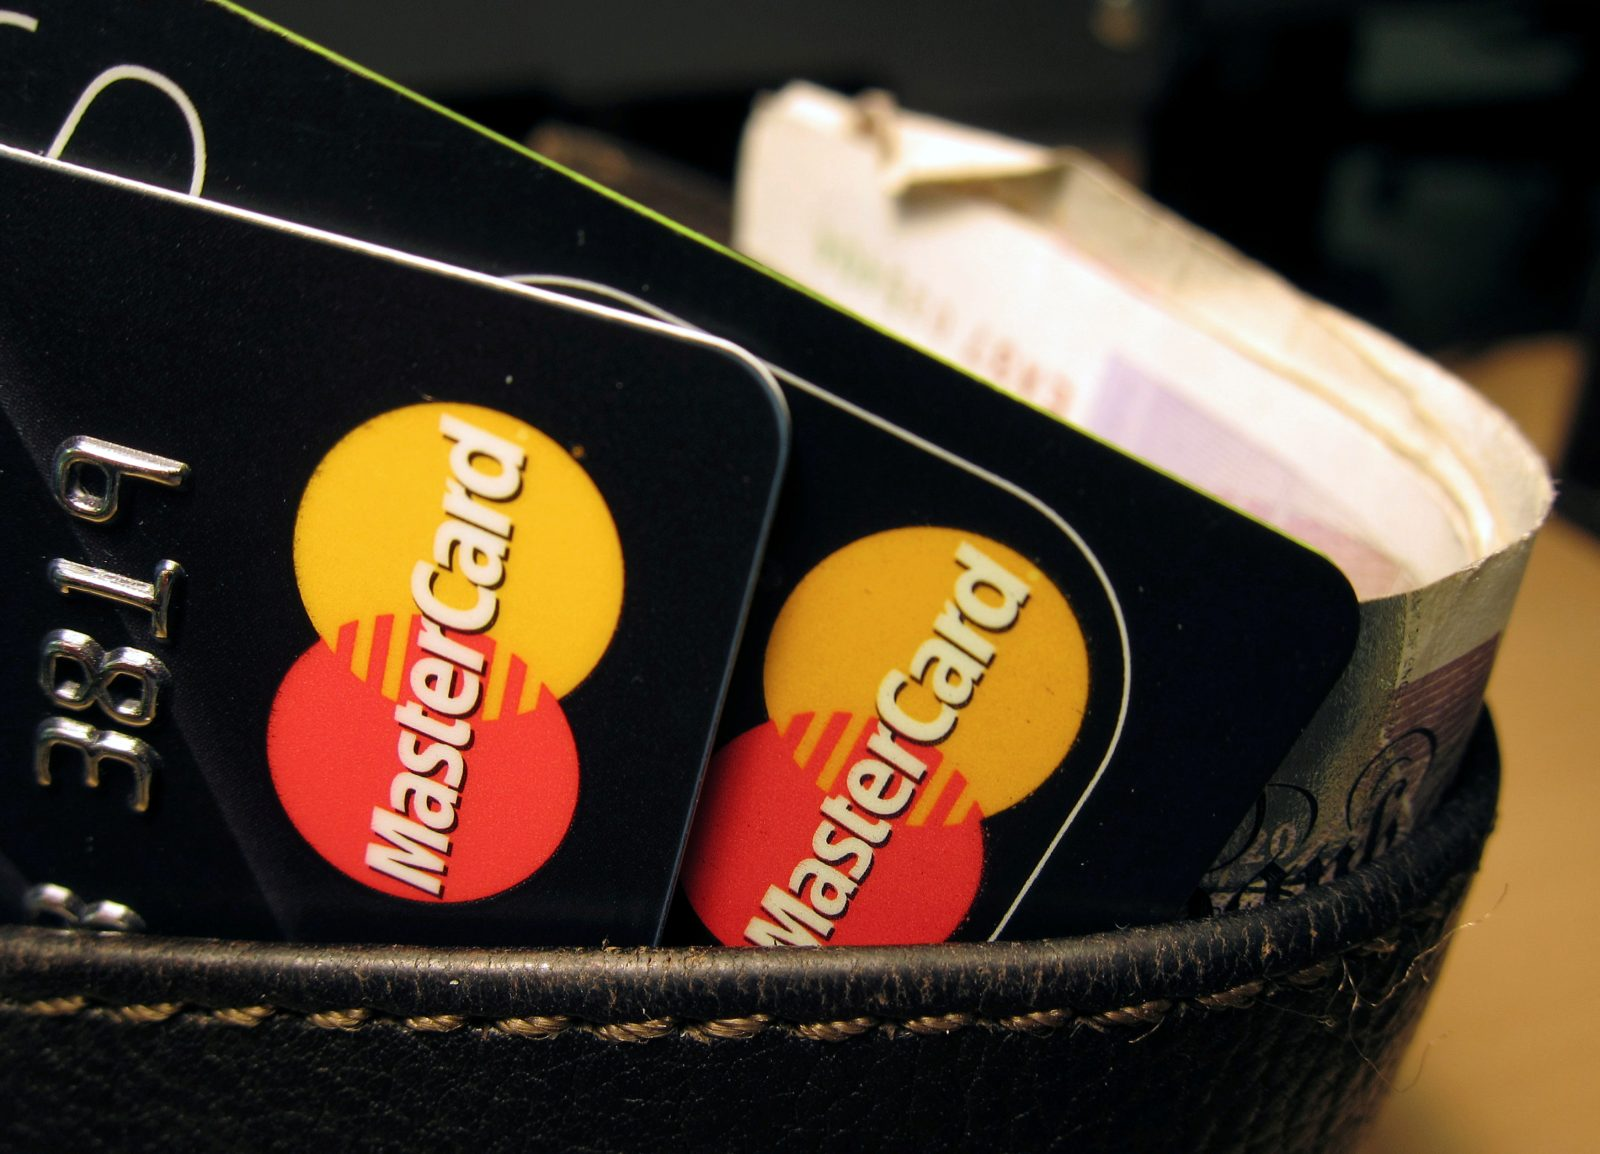 MasterCard credit cards are seen in this illustrative photograph shot December 8, 2010.